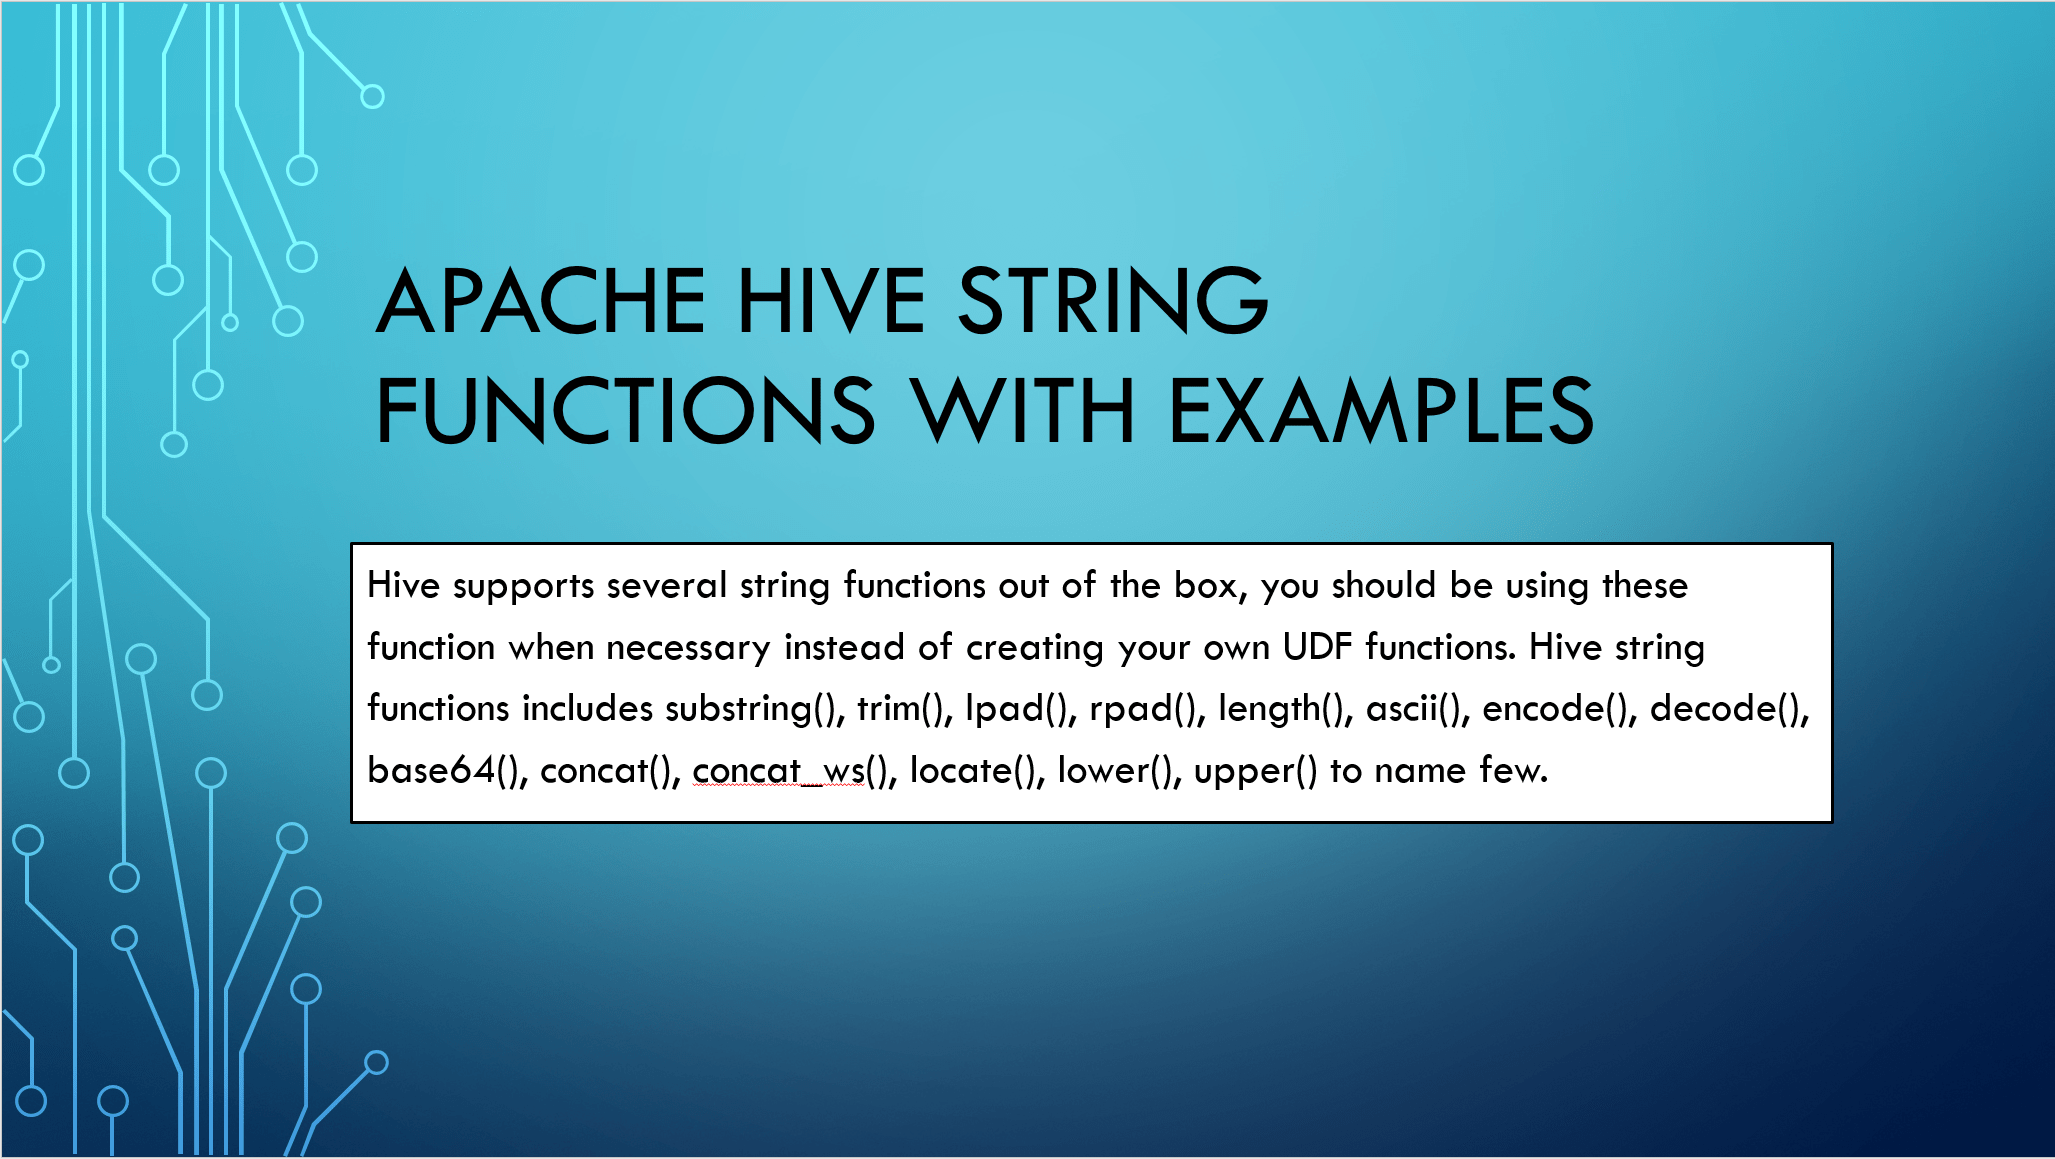 Hive Built-in String Functions with Examples